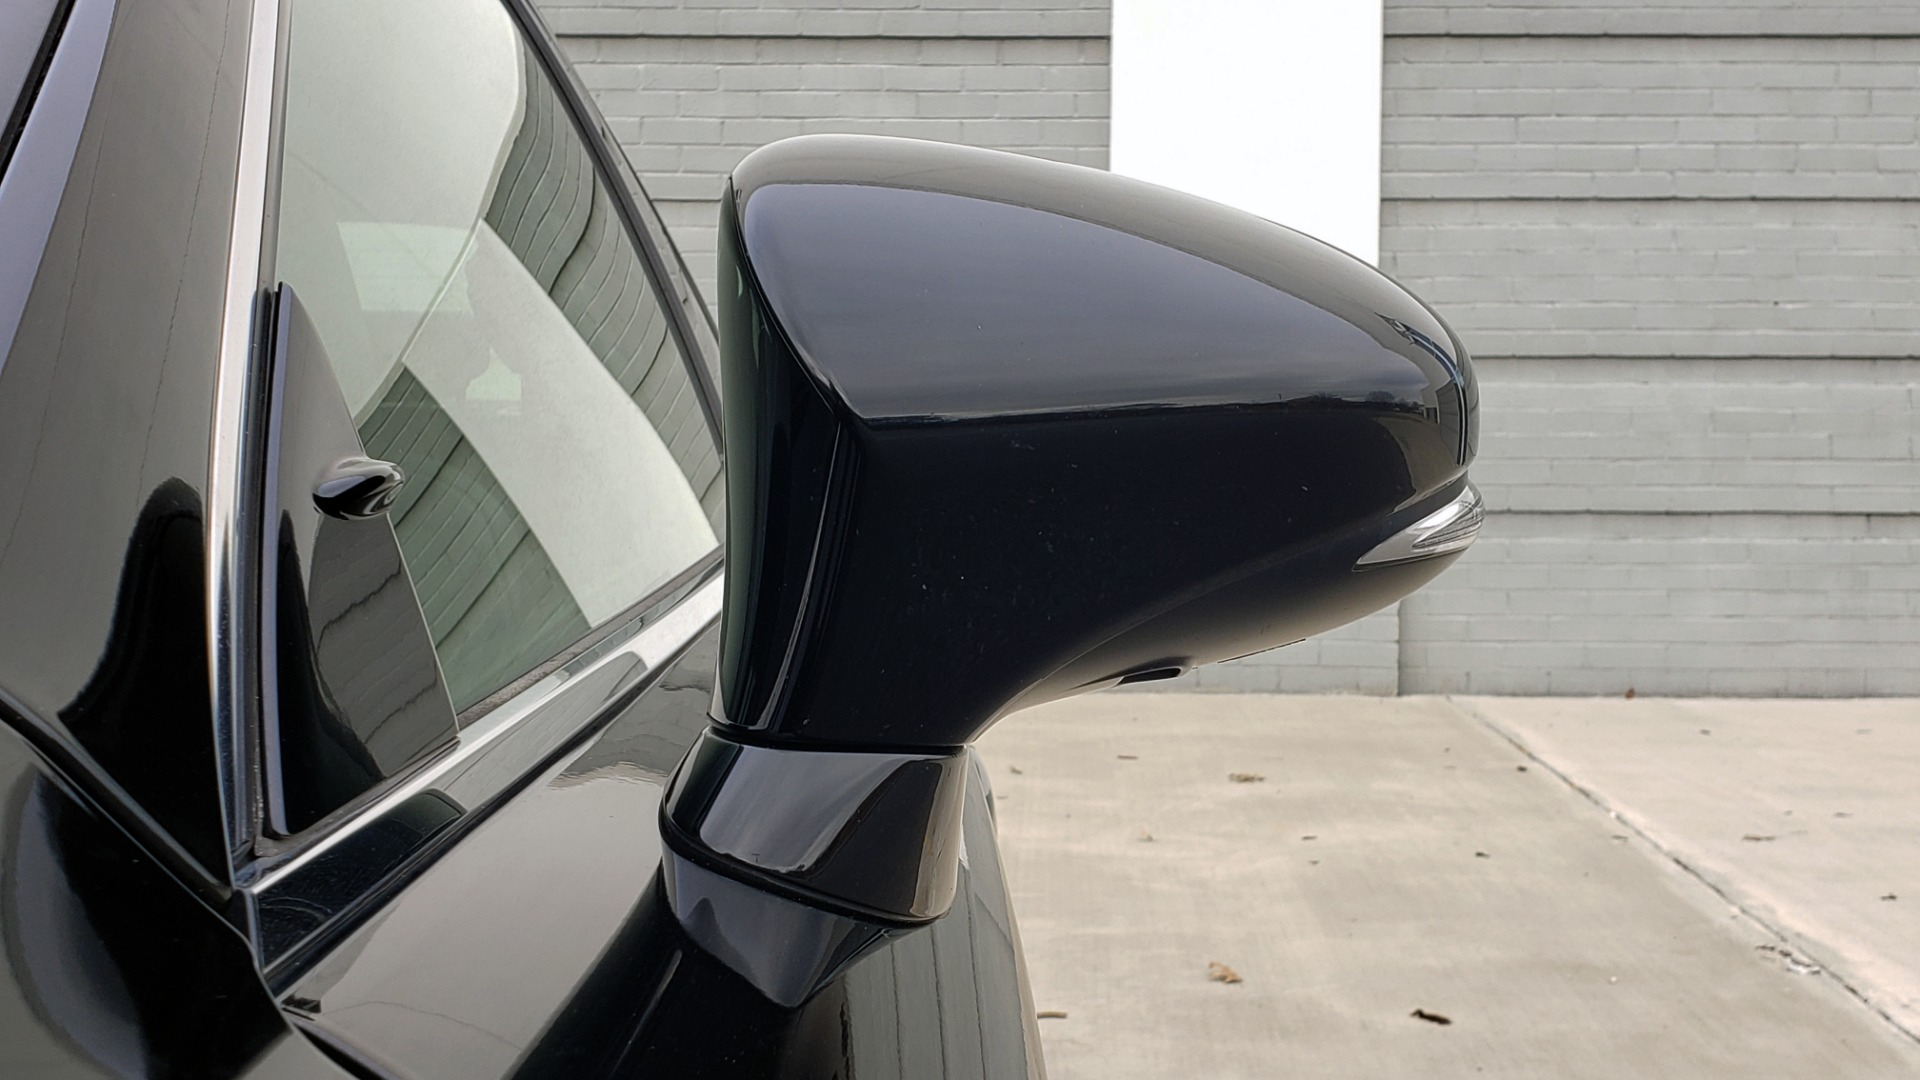 Used 2015 Lexus IS 250 F-SPORT / BLIND SPOT MON / SUNROOF / REARVIEW for sale Sold at Formula Imports in Charlotte NC 28227 23